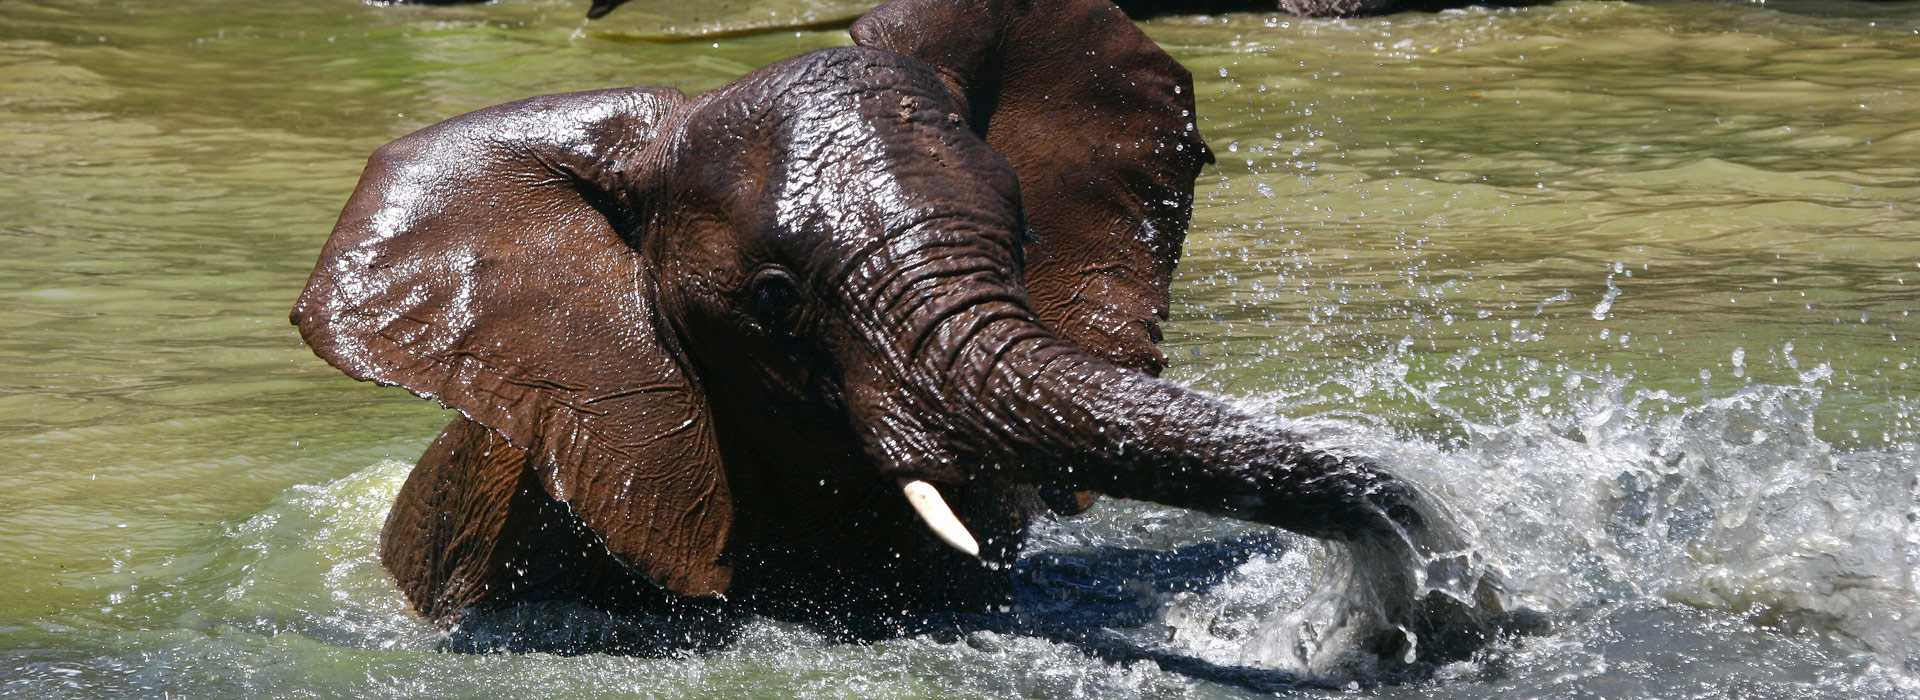 Baby Elephant Splashing In The Water